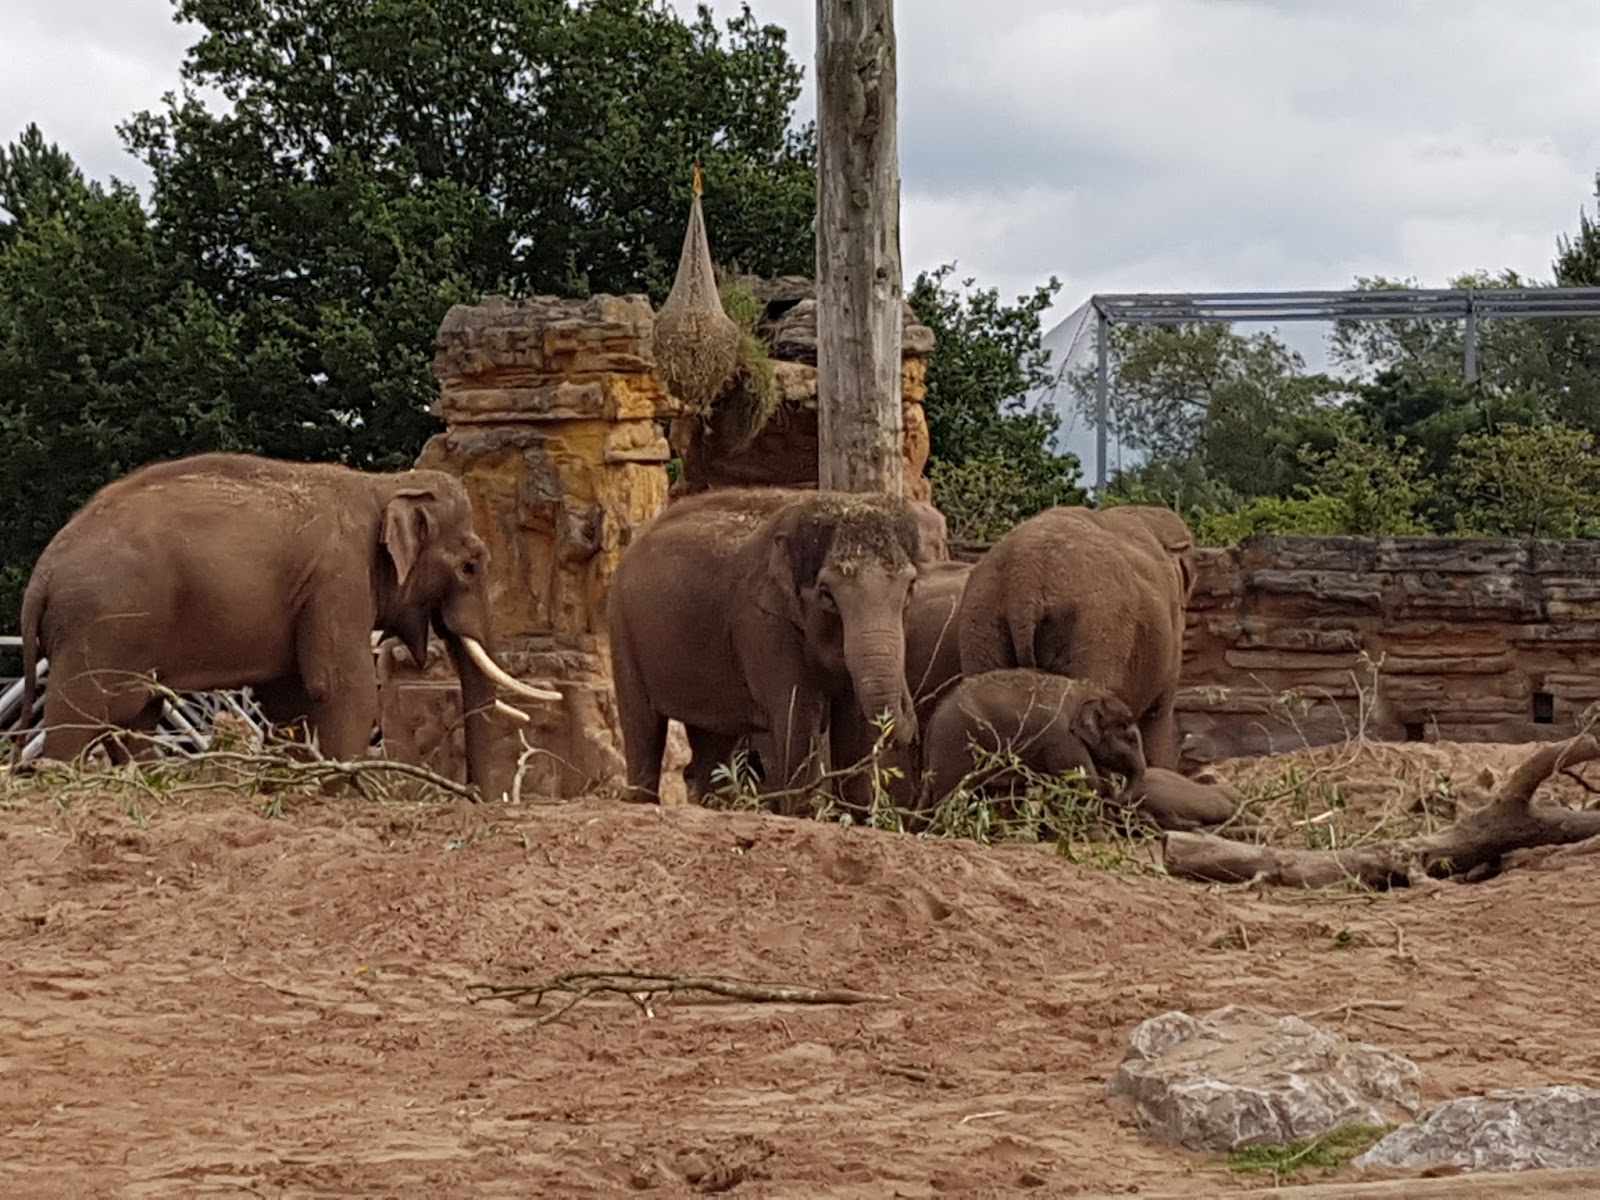 A group of elephants including a baby elephant all standing close together.